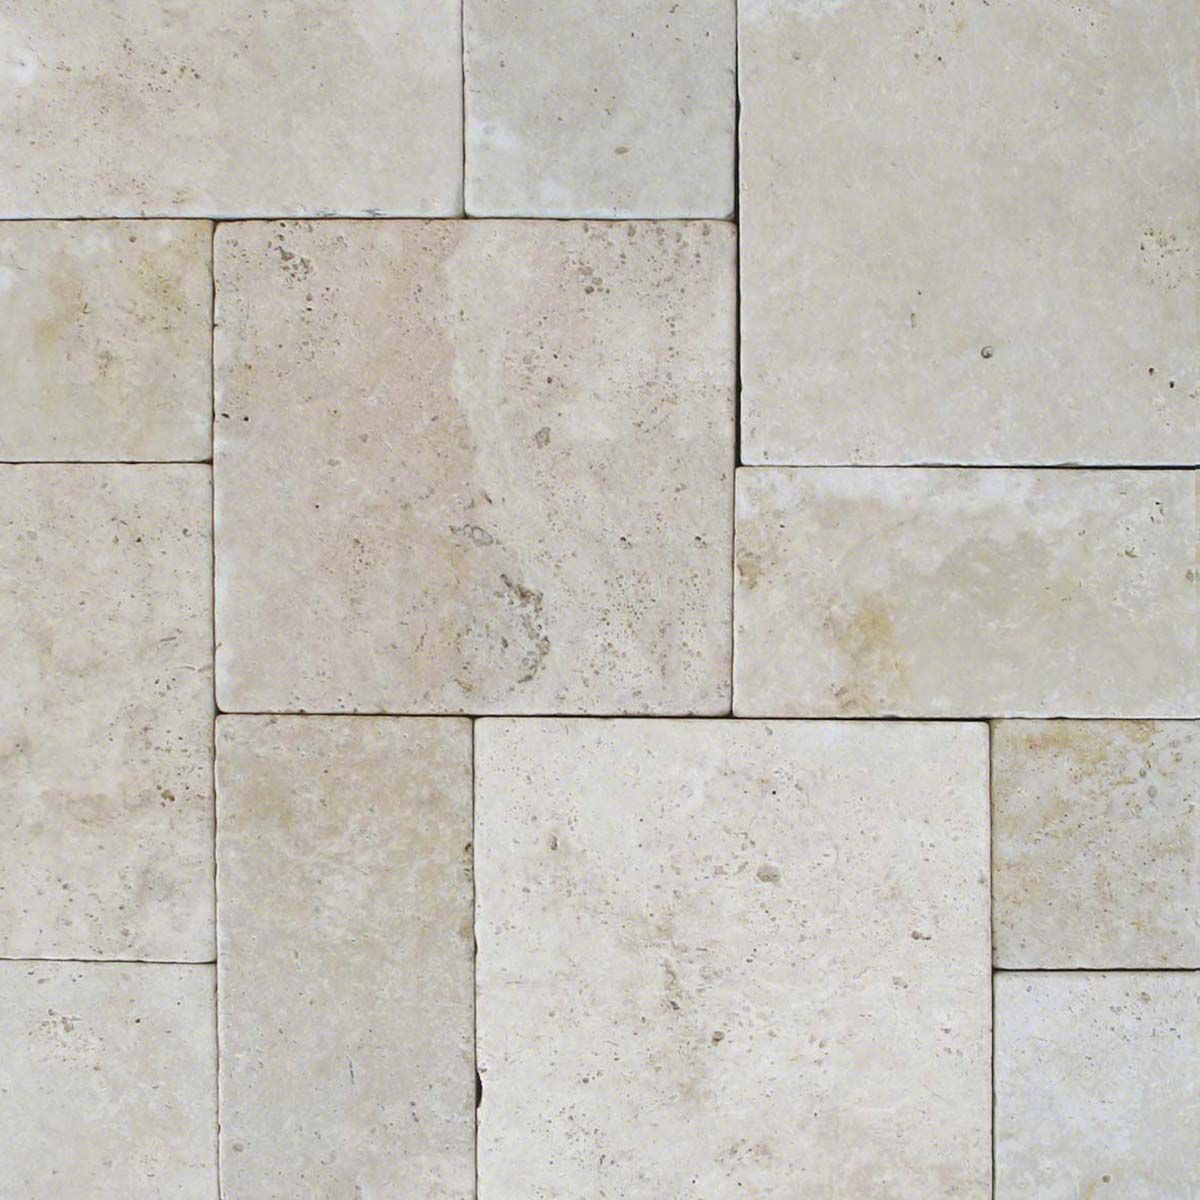 Pavers tuscany beige tumbled travertine landscape kitchen new tuscany beige tumbled travertine paver tile each tile sqft dailygadgetfo Gallery